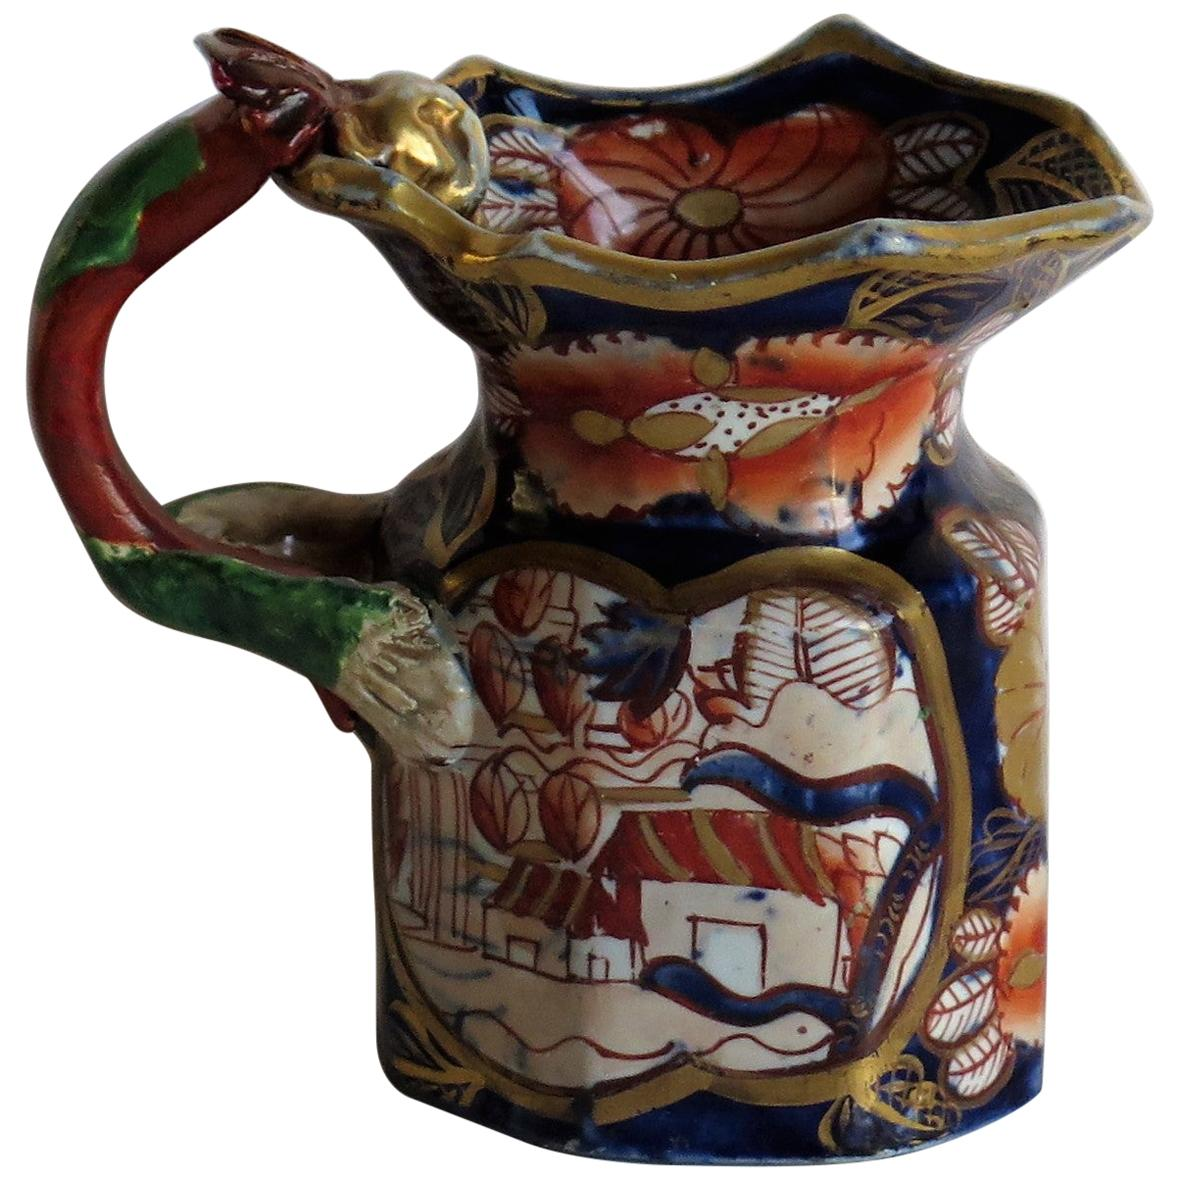 Early Mason's Ironstone Cream Jug or Pitcher in School House Pattern, circa 1820